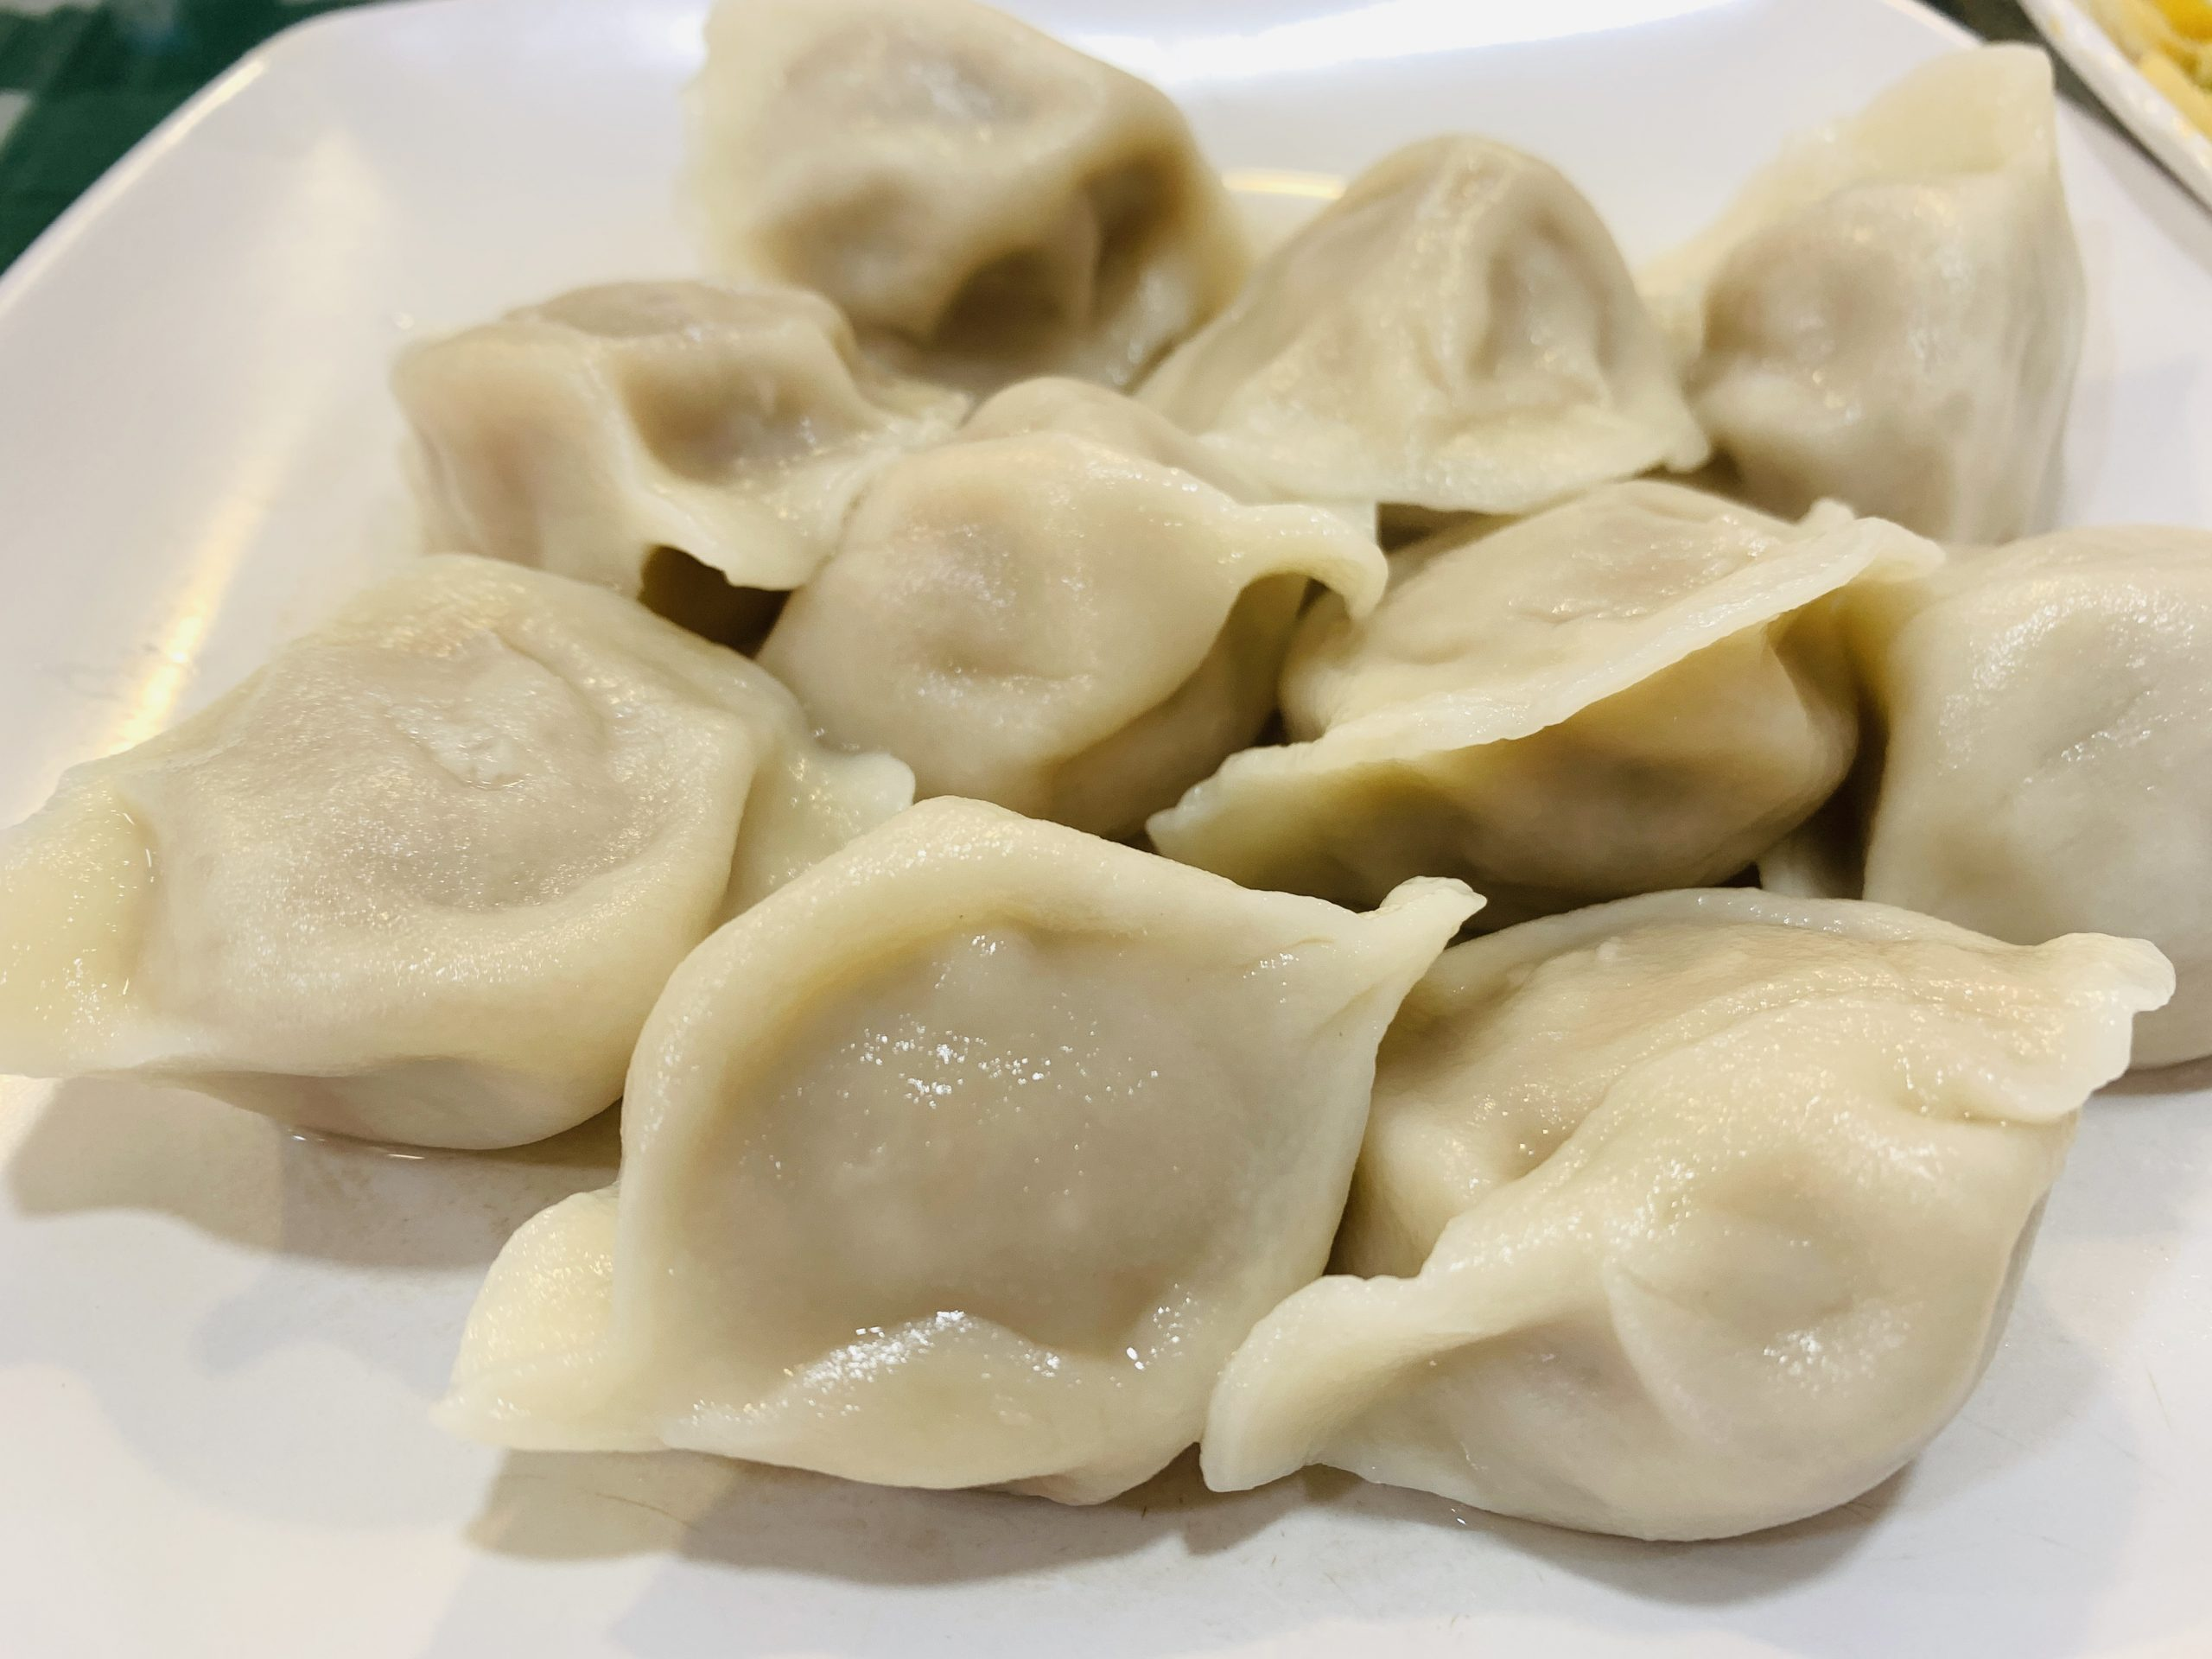 Chinese Cuisine - Pork with Long Cabbage Dumpling